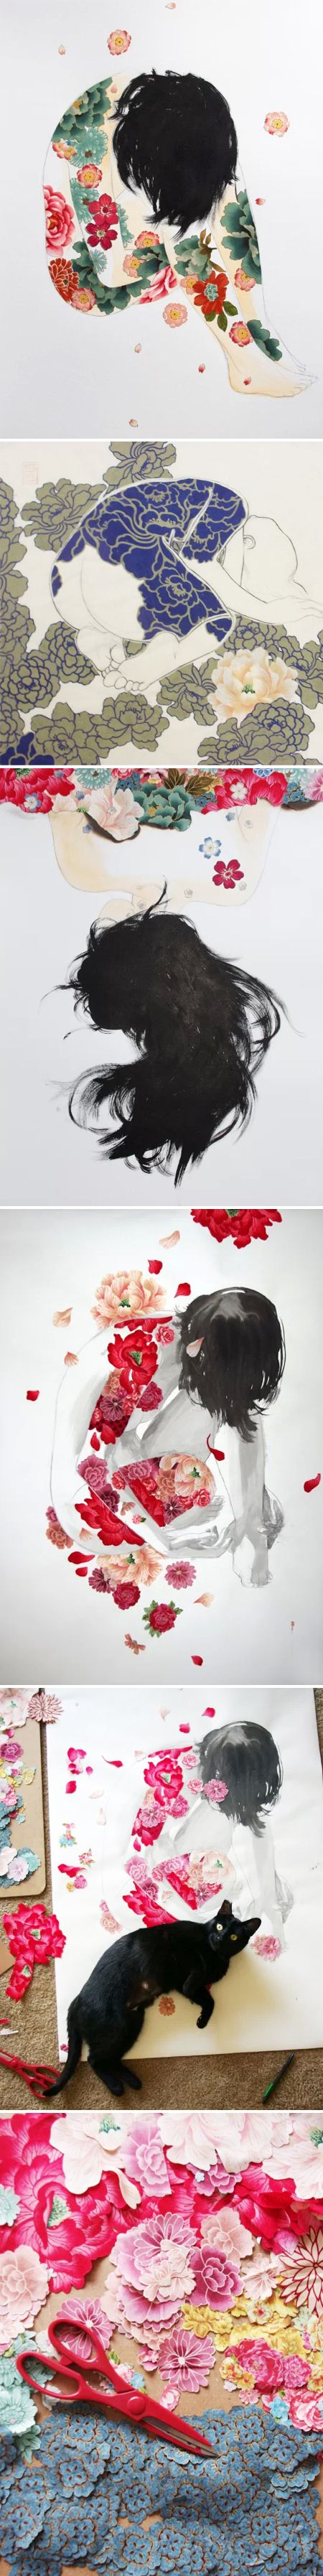 Cut Fabric Flower Girls // Stasia Burrington // washy drawings covered in cut fabric flowers